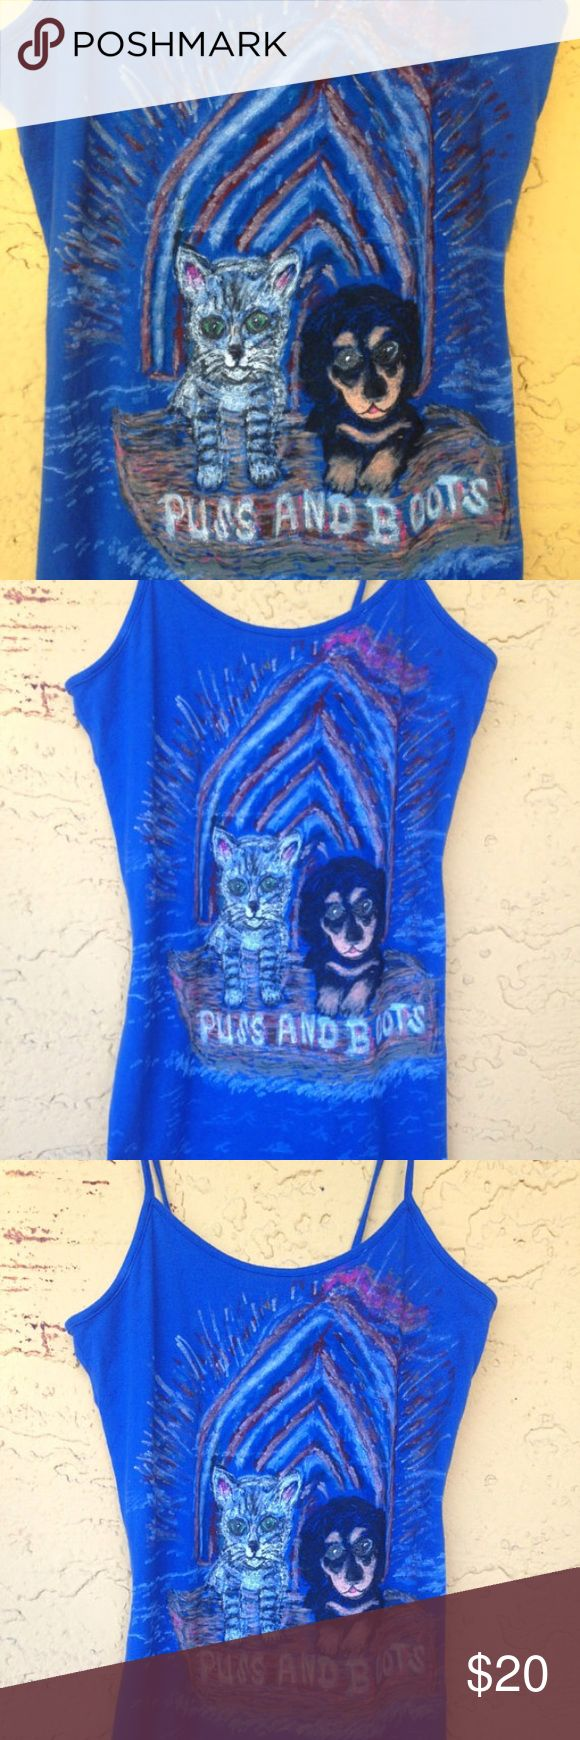 Dog And Cat Tank Top We hand drawn designs on T-shirts, Sweatshirts, Tank Tops and Cami Tank Tops. We will draw just about any design you want from your dogs, cats, horses, fish, nature, beaches etc. If you are looking for a specific design all we need is you to send us a message with the size, color of the clothing and a photo of what your looking to have us design.   We have this cute hand drawn Tank Top that features an adorable Dachshund and Cat setting sail for adventure. Brand New Tank…